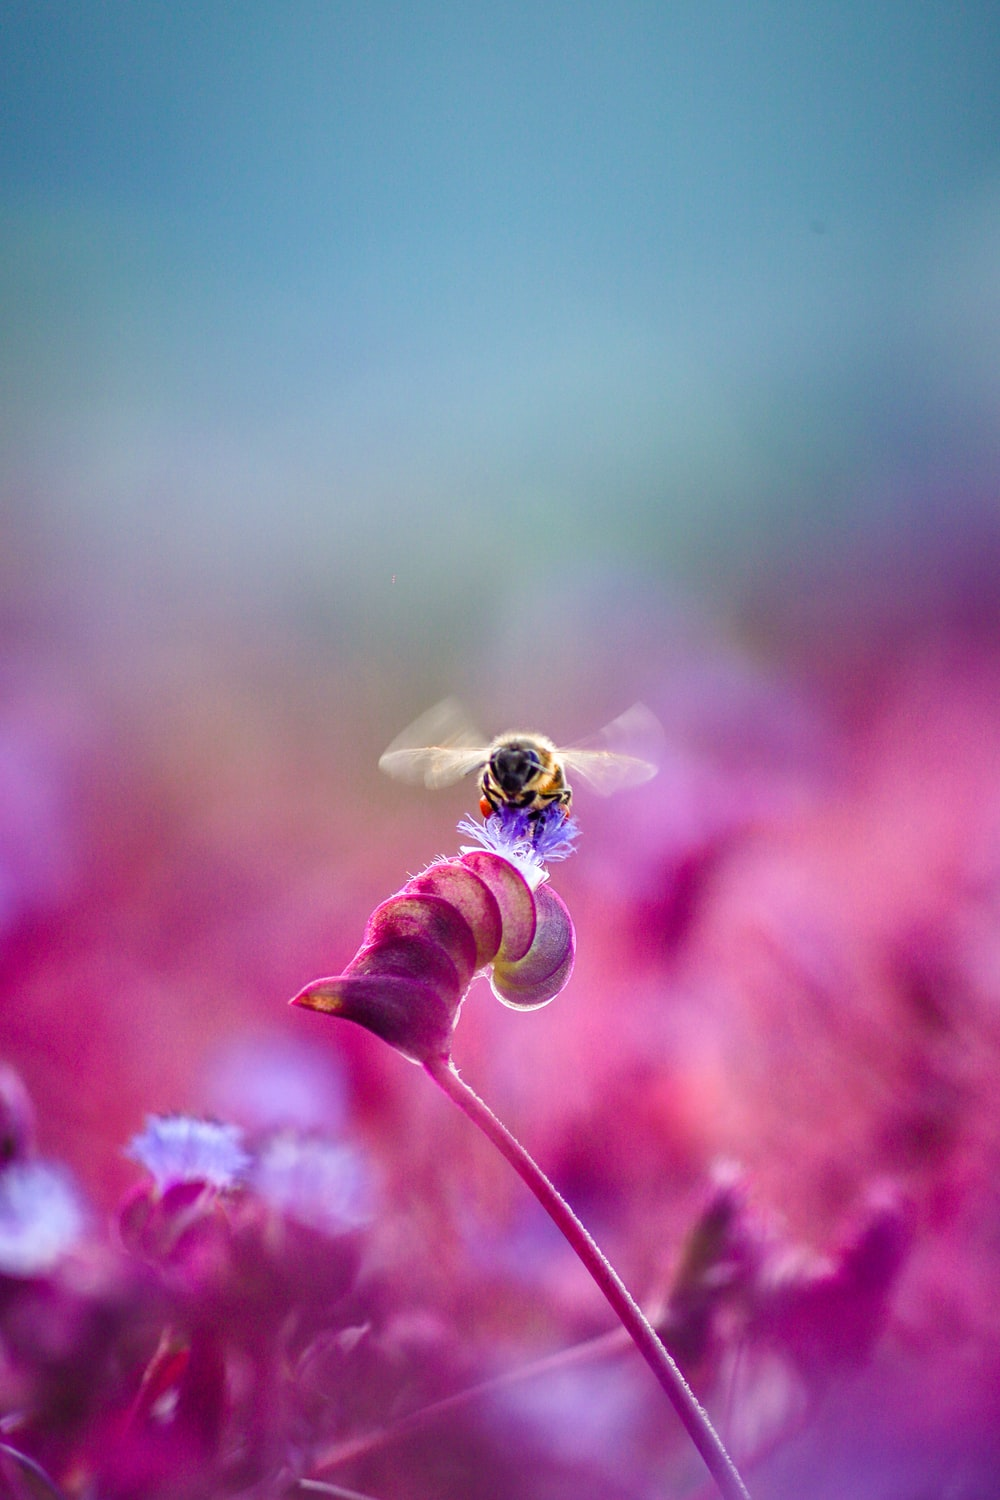 yellow and black bee on pink flower